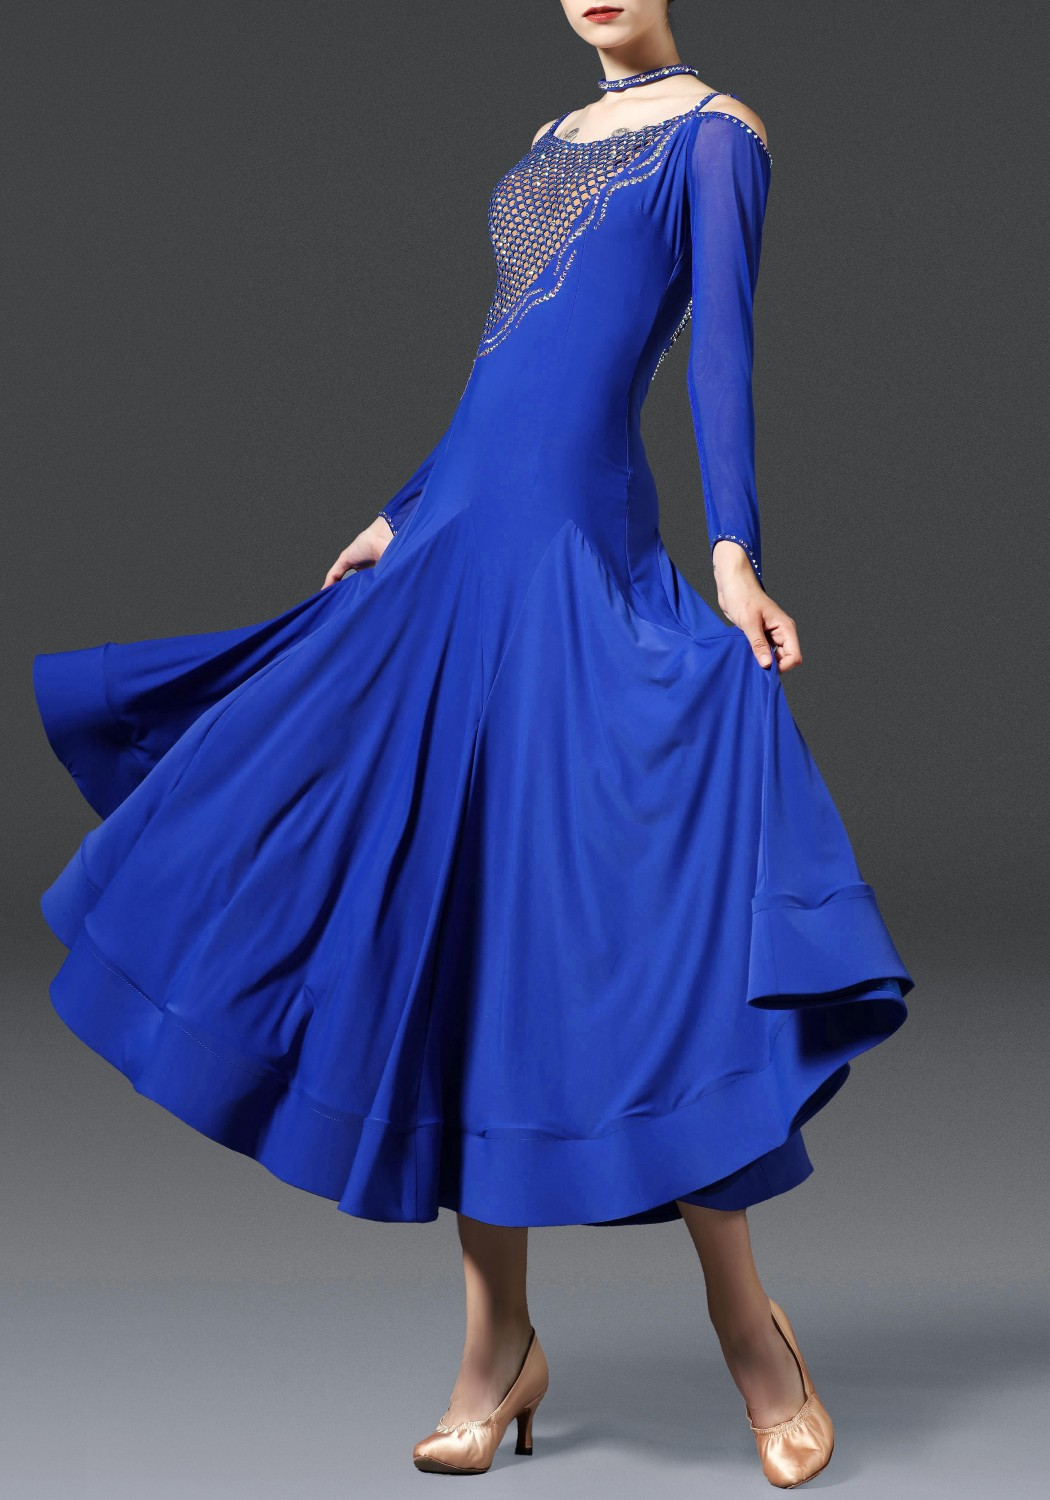 Royal Blue Luxury Crepe with Lace Ballroom Smooth Practice Dance Dress